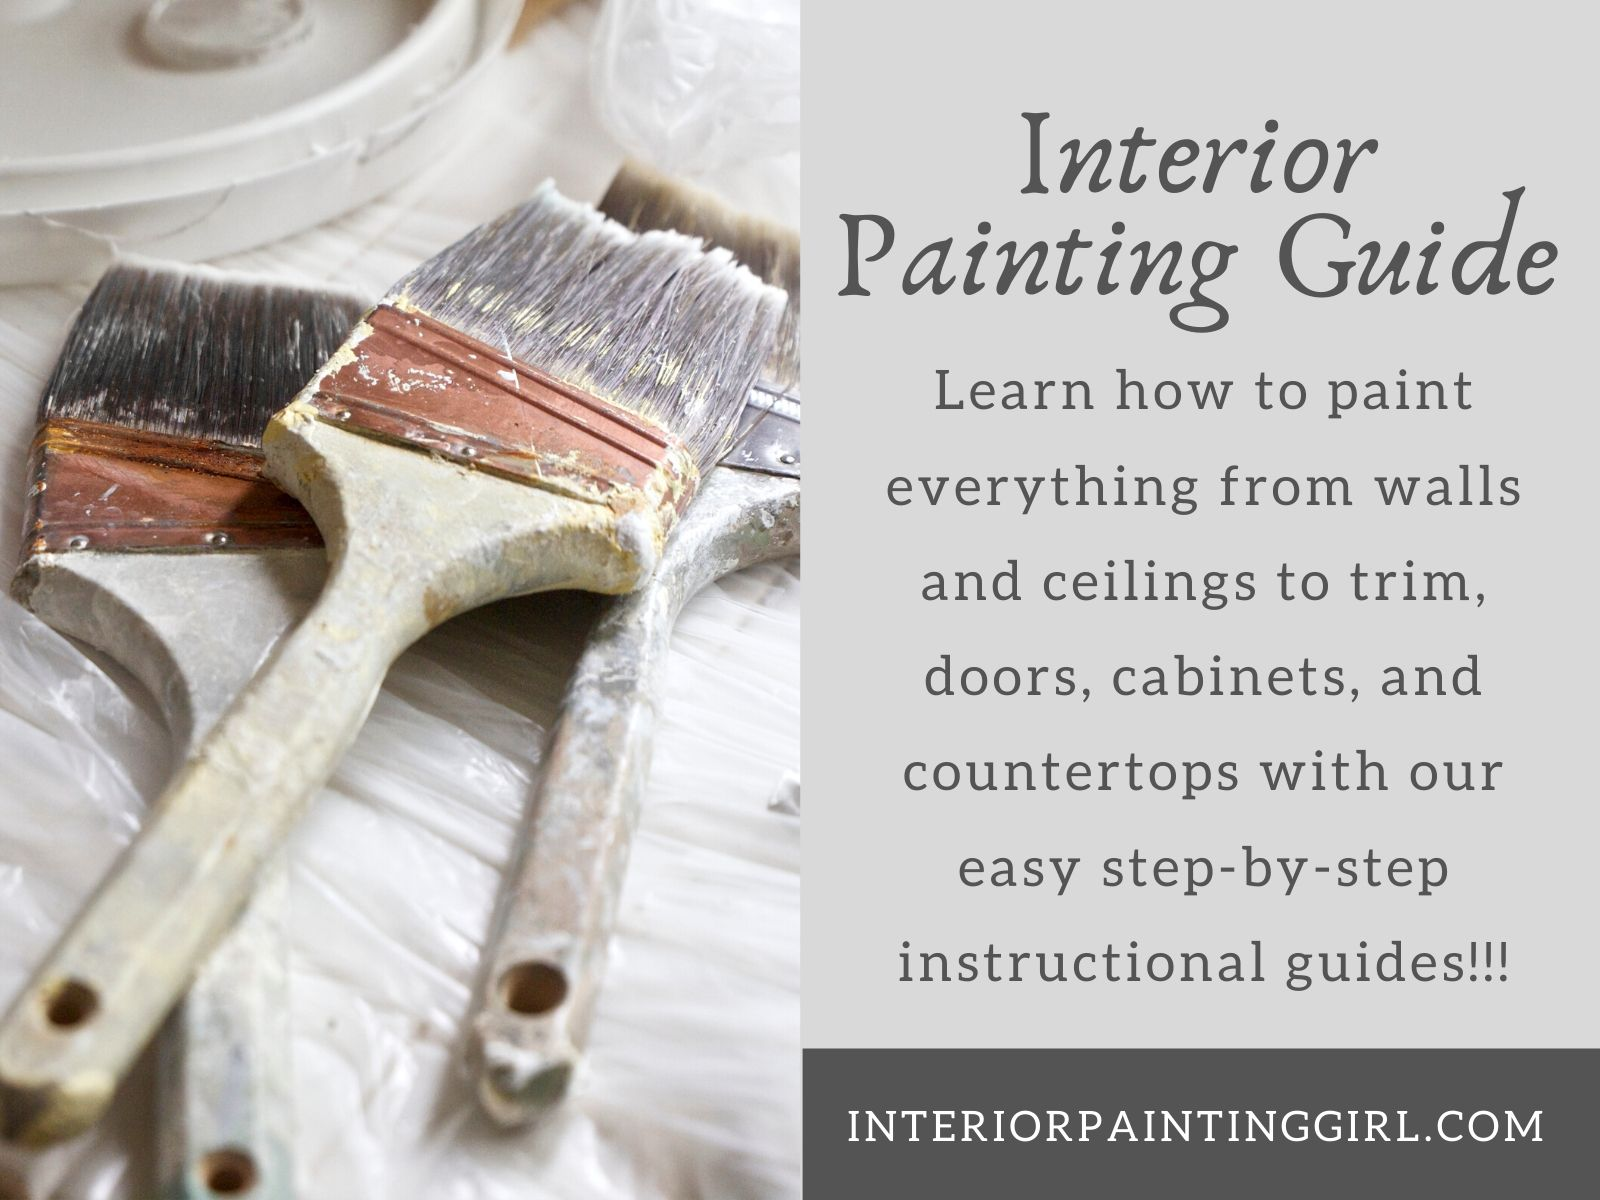 Learn from our step-by-step interior painting guides for everything from walls & ceilings to cabinets!